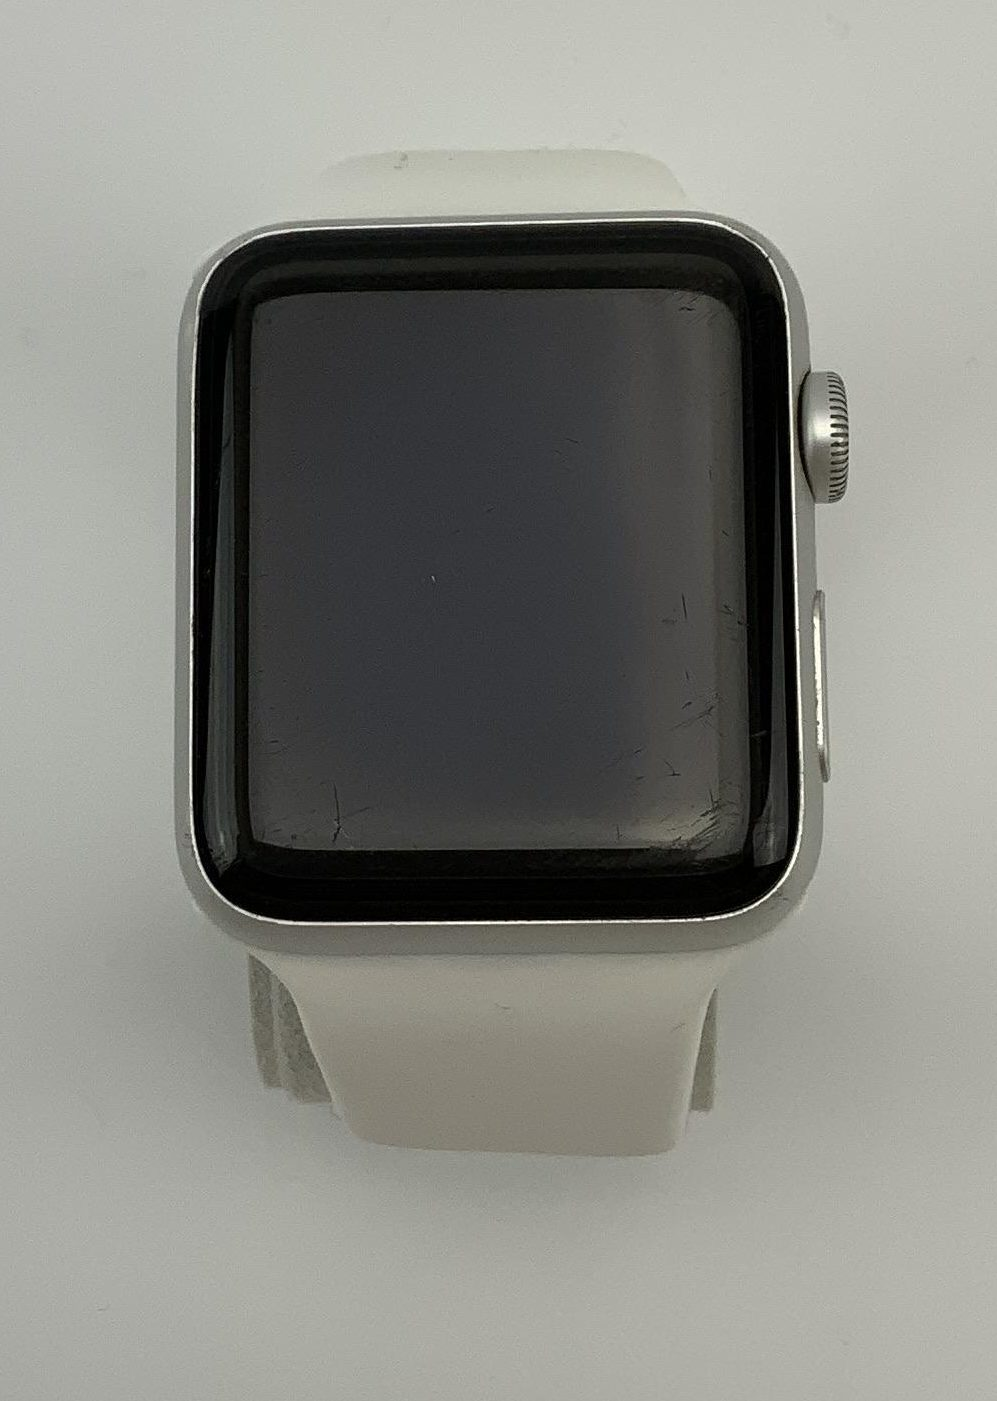 Watch Series 3 Aluminum Cellular (42mm), Space Gray, Black Sport Band, image 1